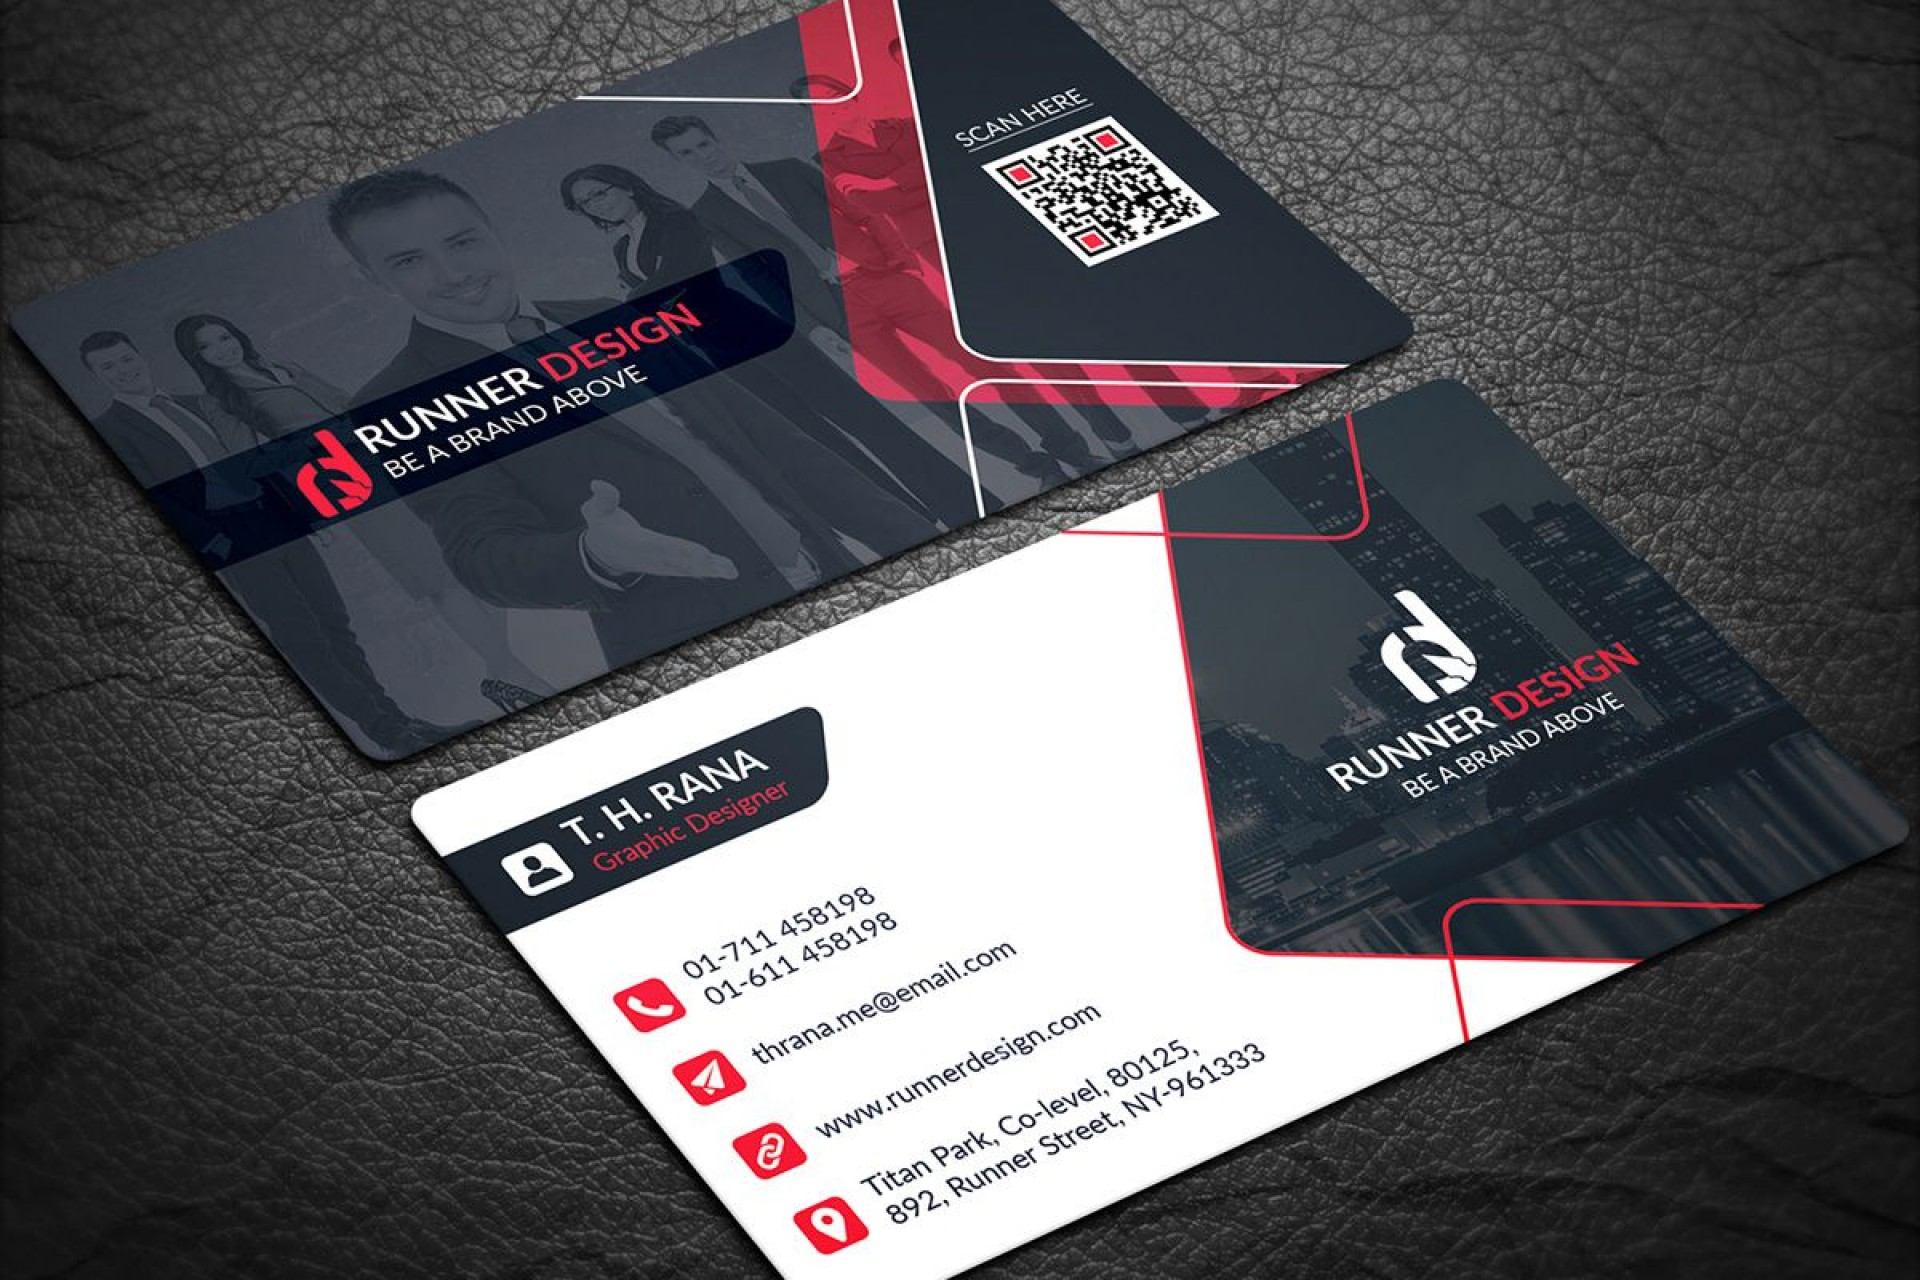 001 Staggering Psd Busines Card Template High Definition  With Bleed And Crop Mark Vistaprint Free1920